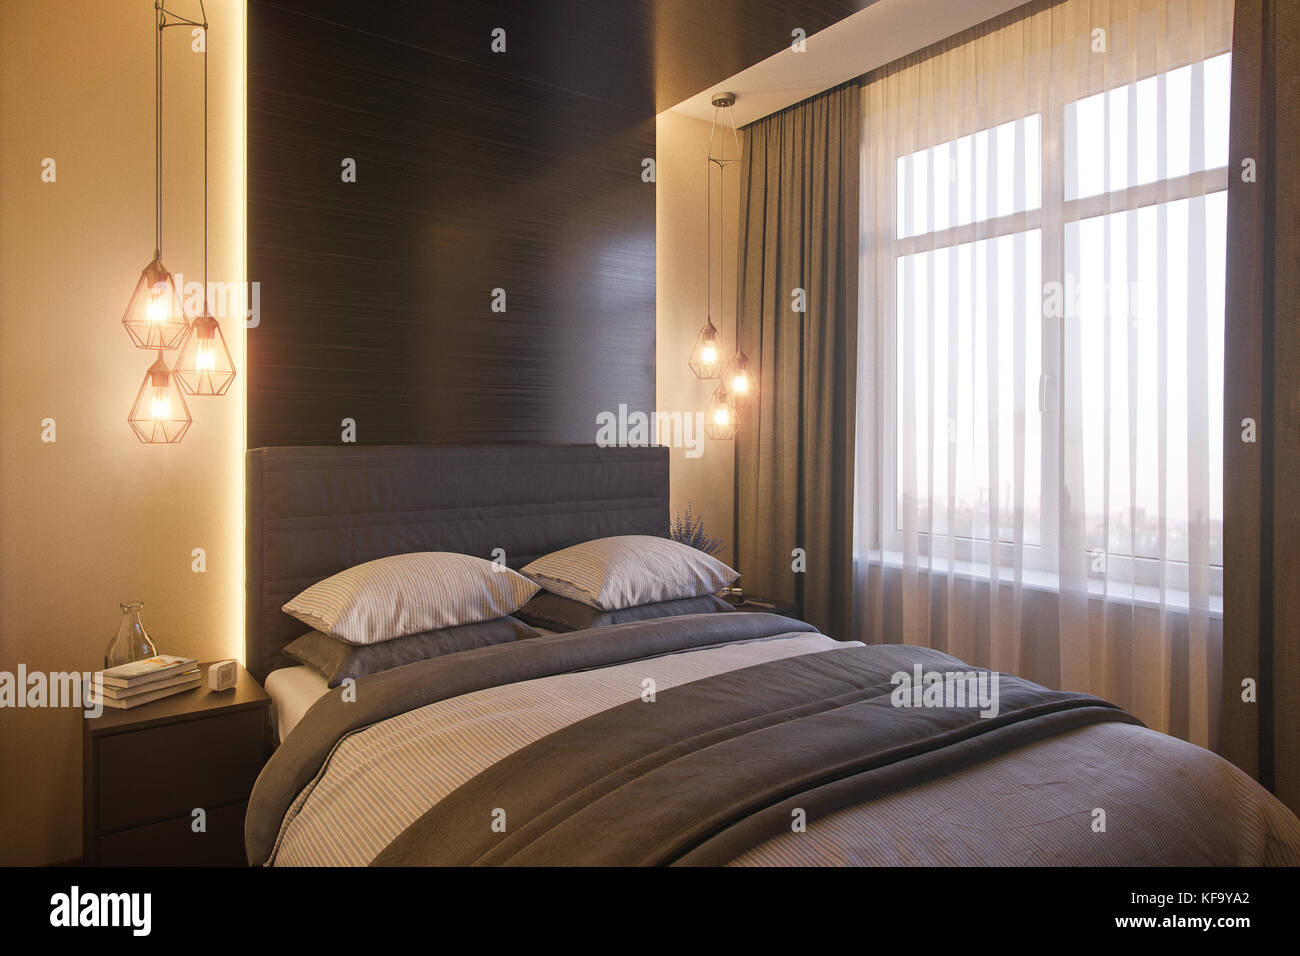 3d Illustration Of A Bedroom Interior Design In A Scandinavian Modern Stock Photo Alamy